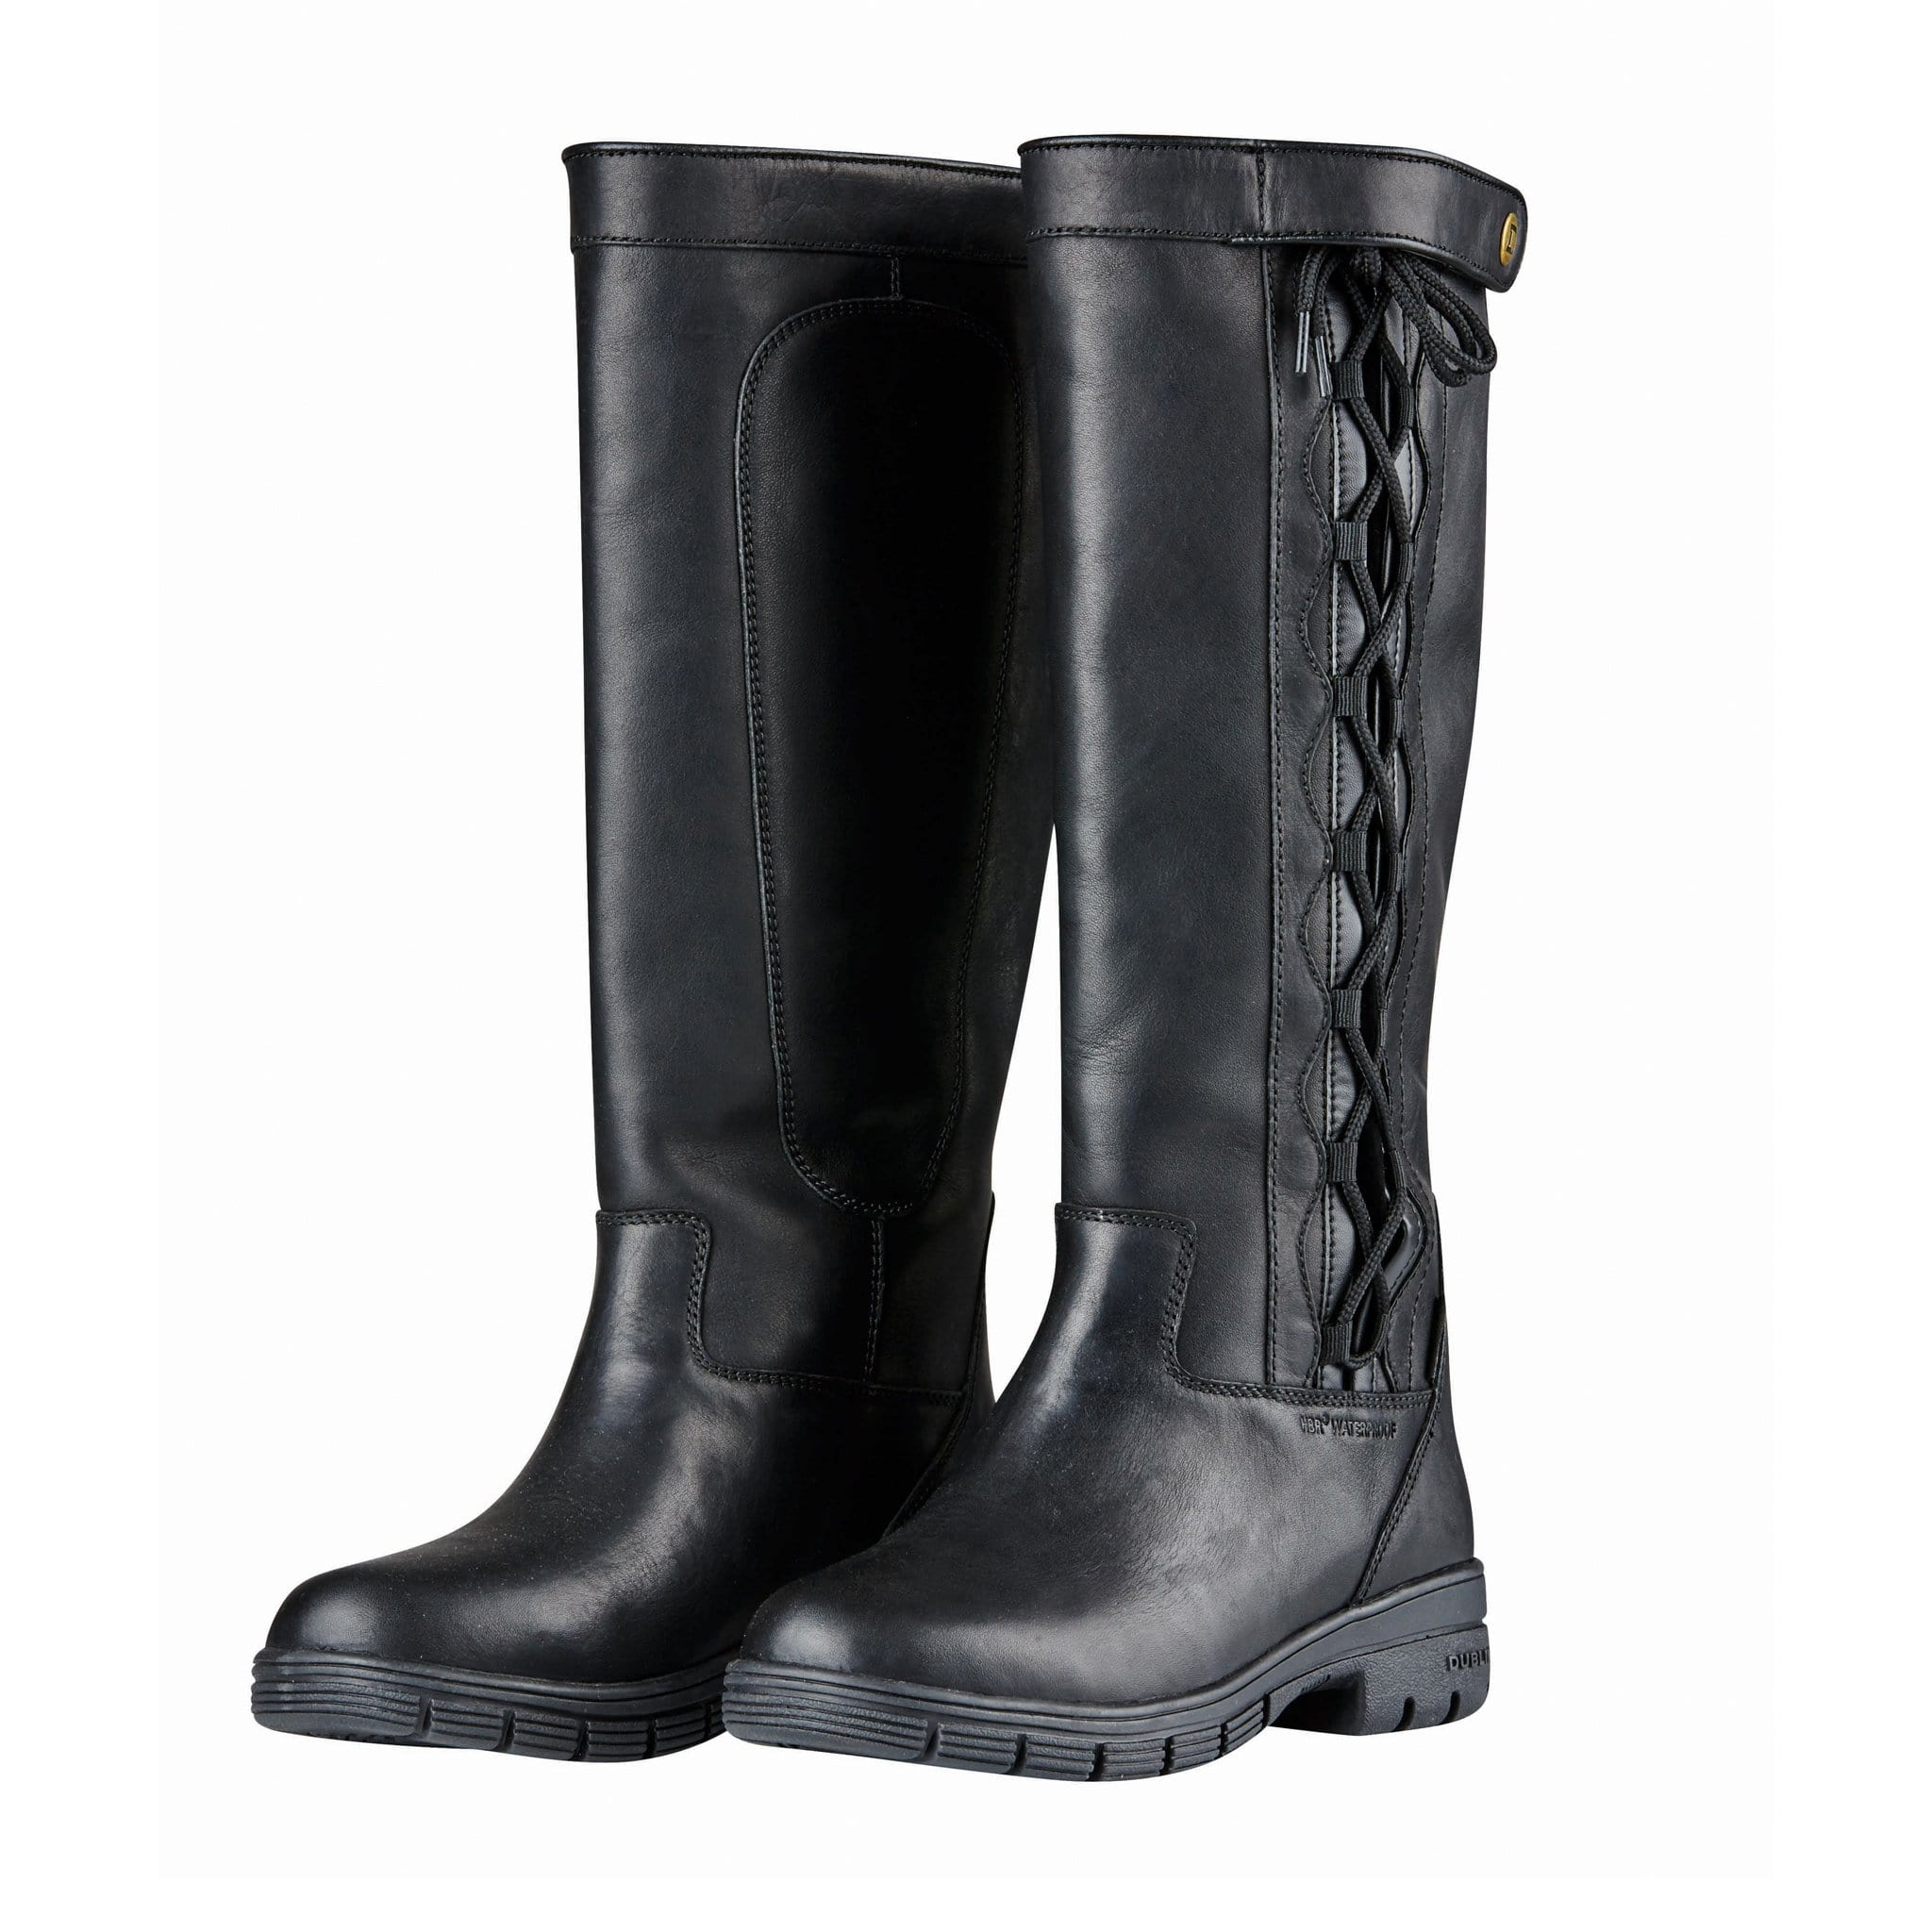 Dublin Pinnacle Grain Boots II in Black 817680